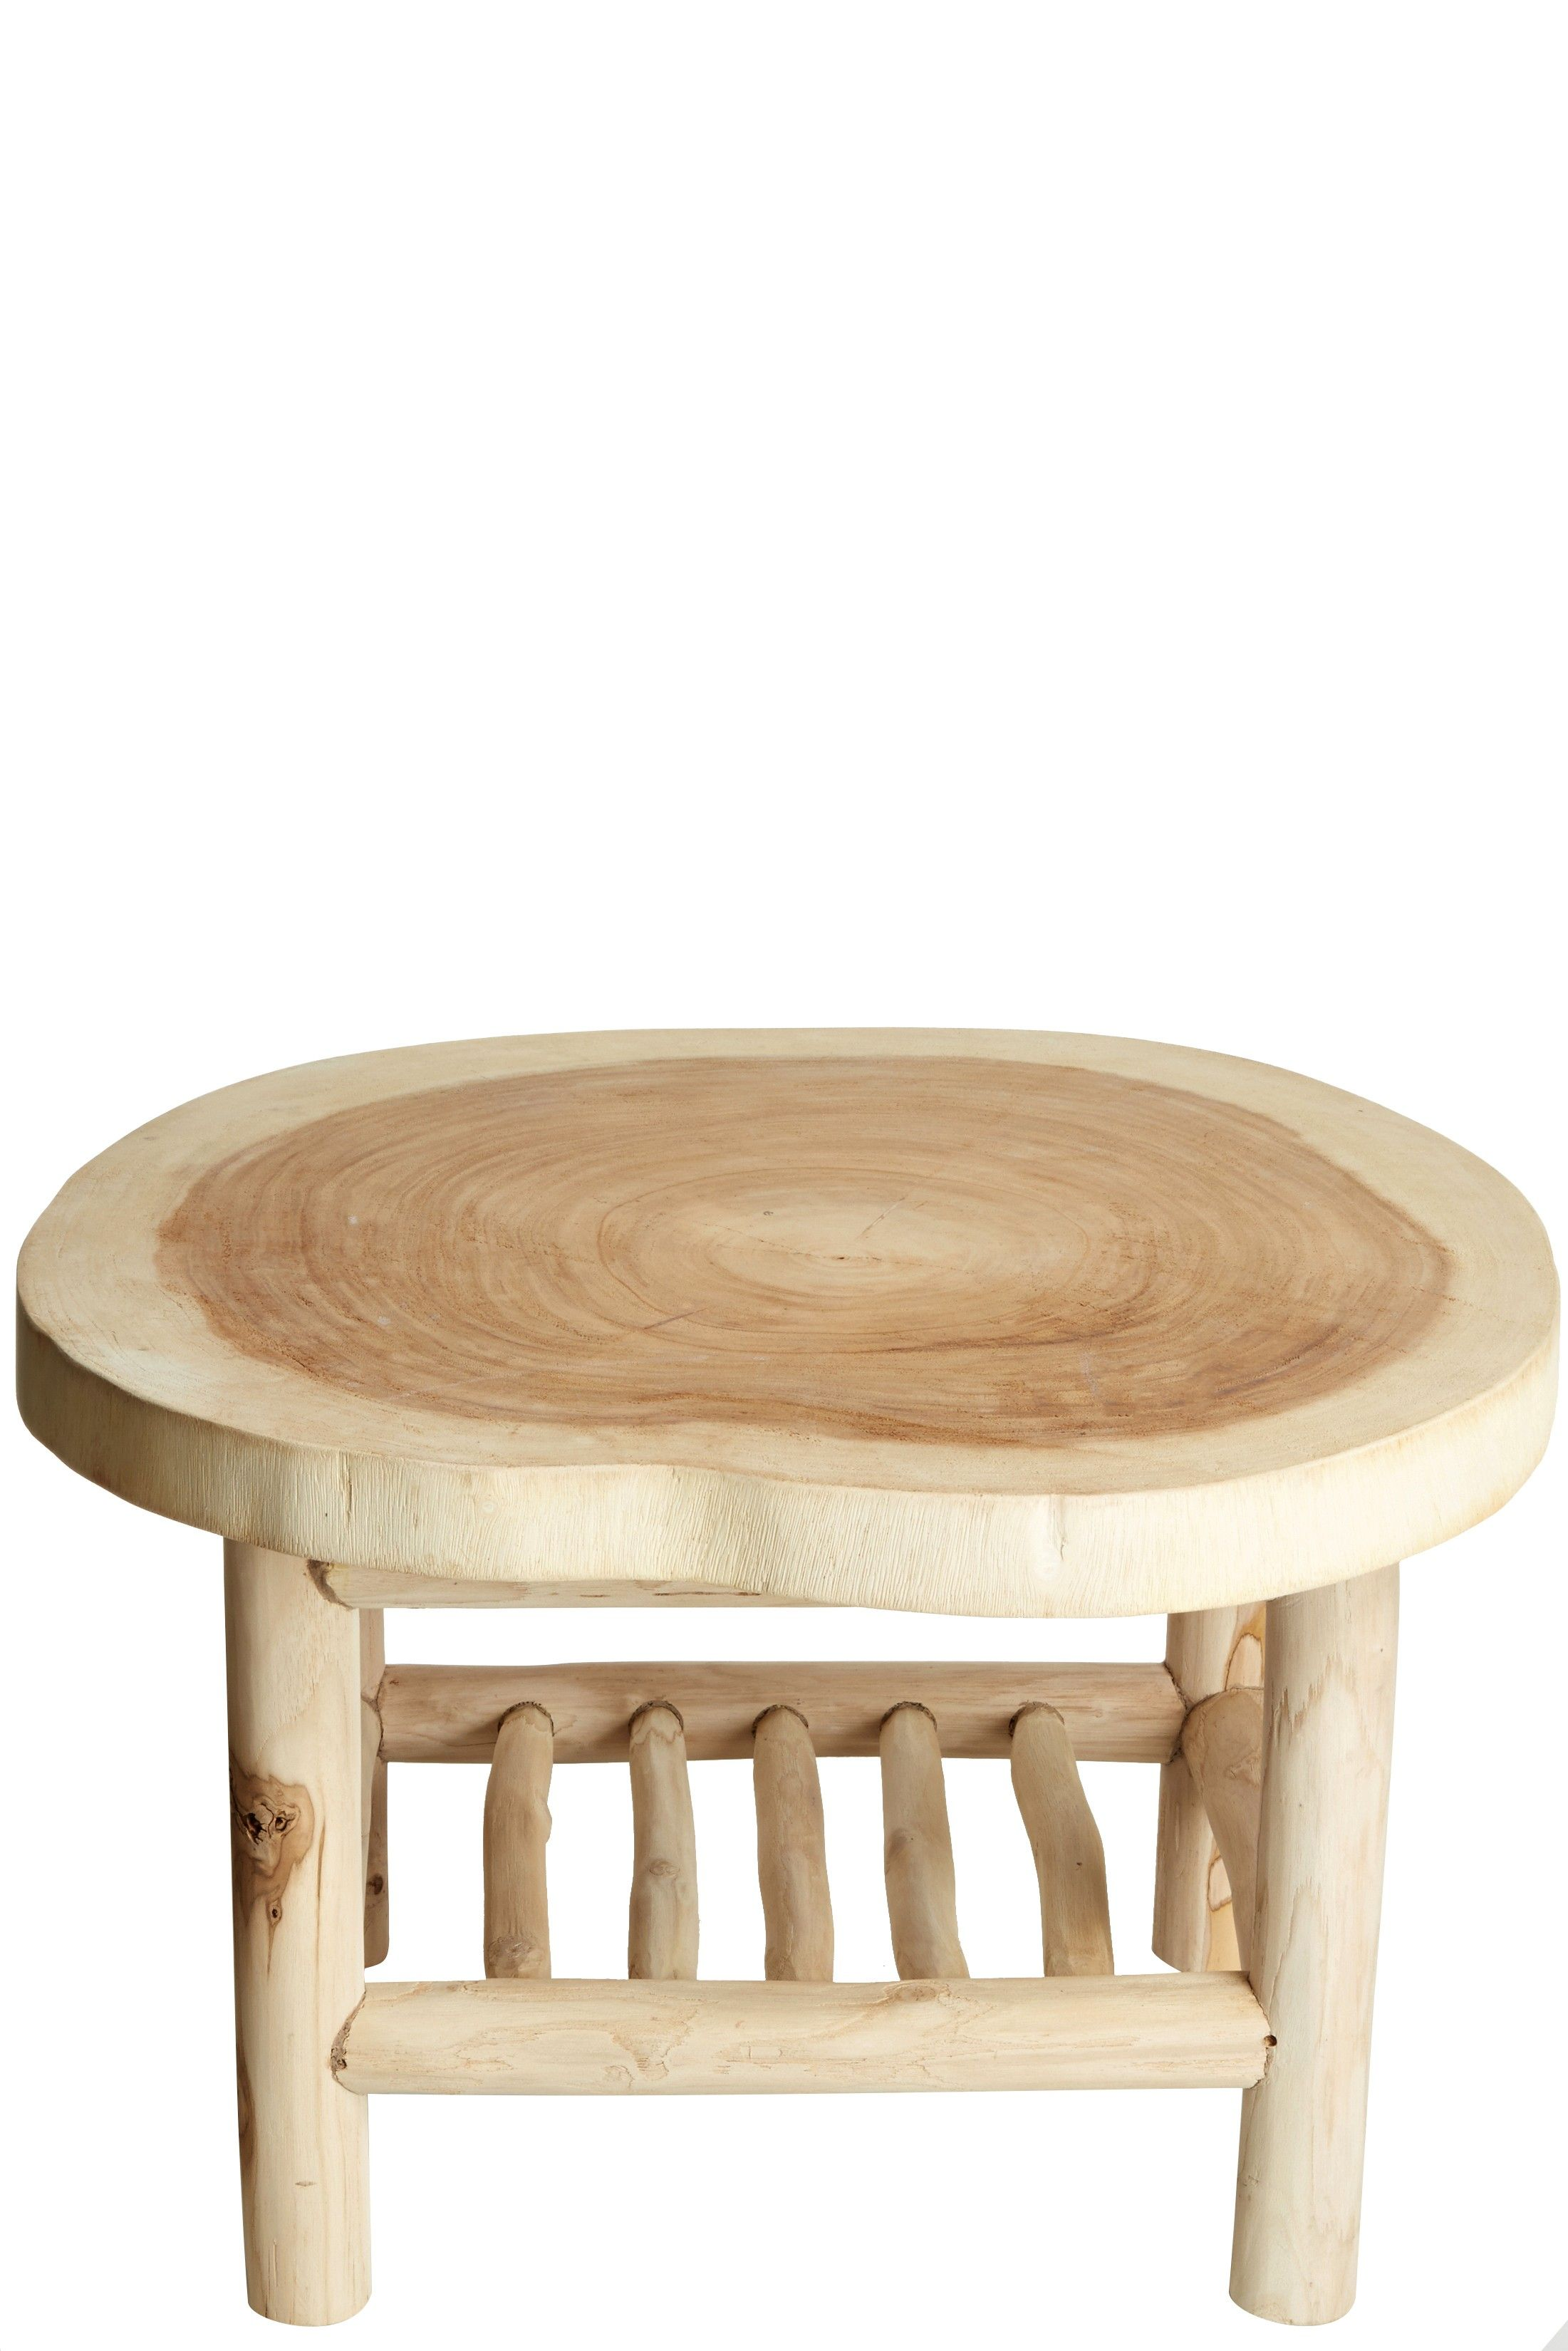 Rustic round coffee table recycled teak wilma coffee table  inspirations  pinterest  teak